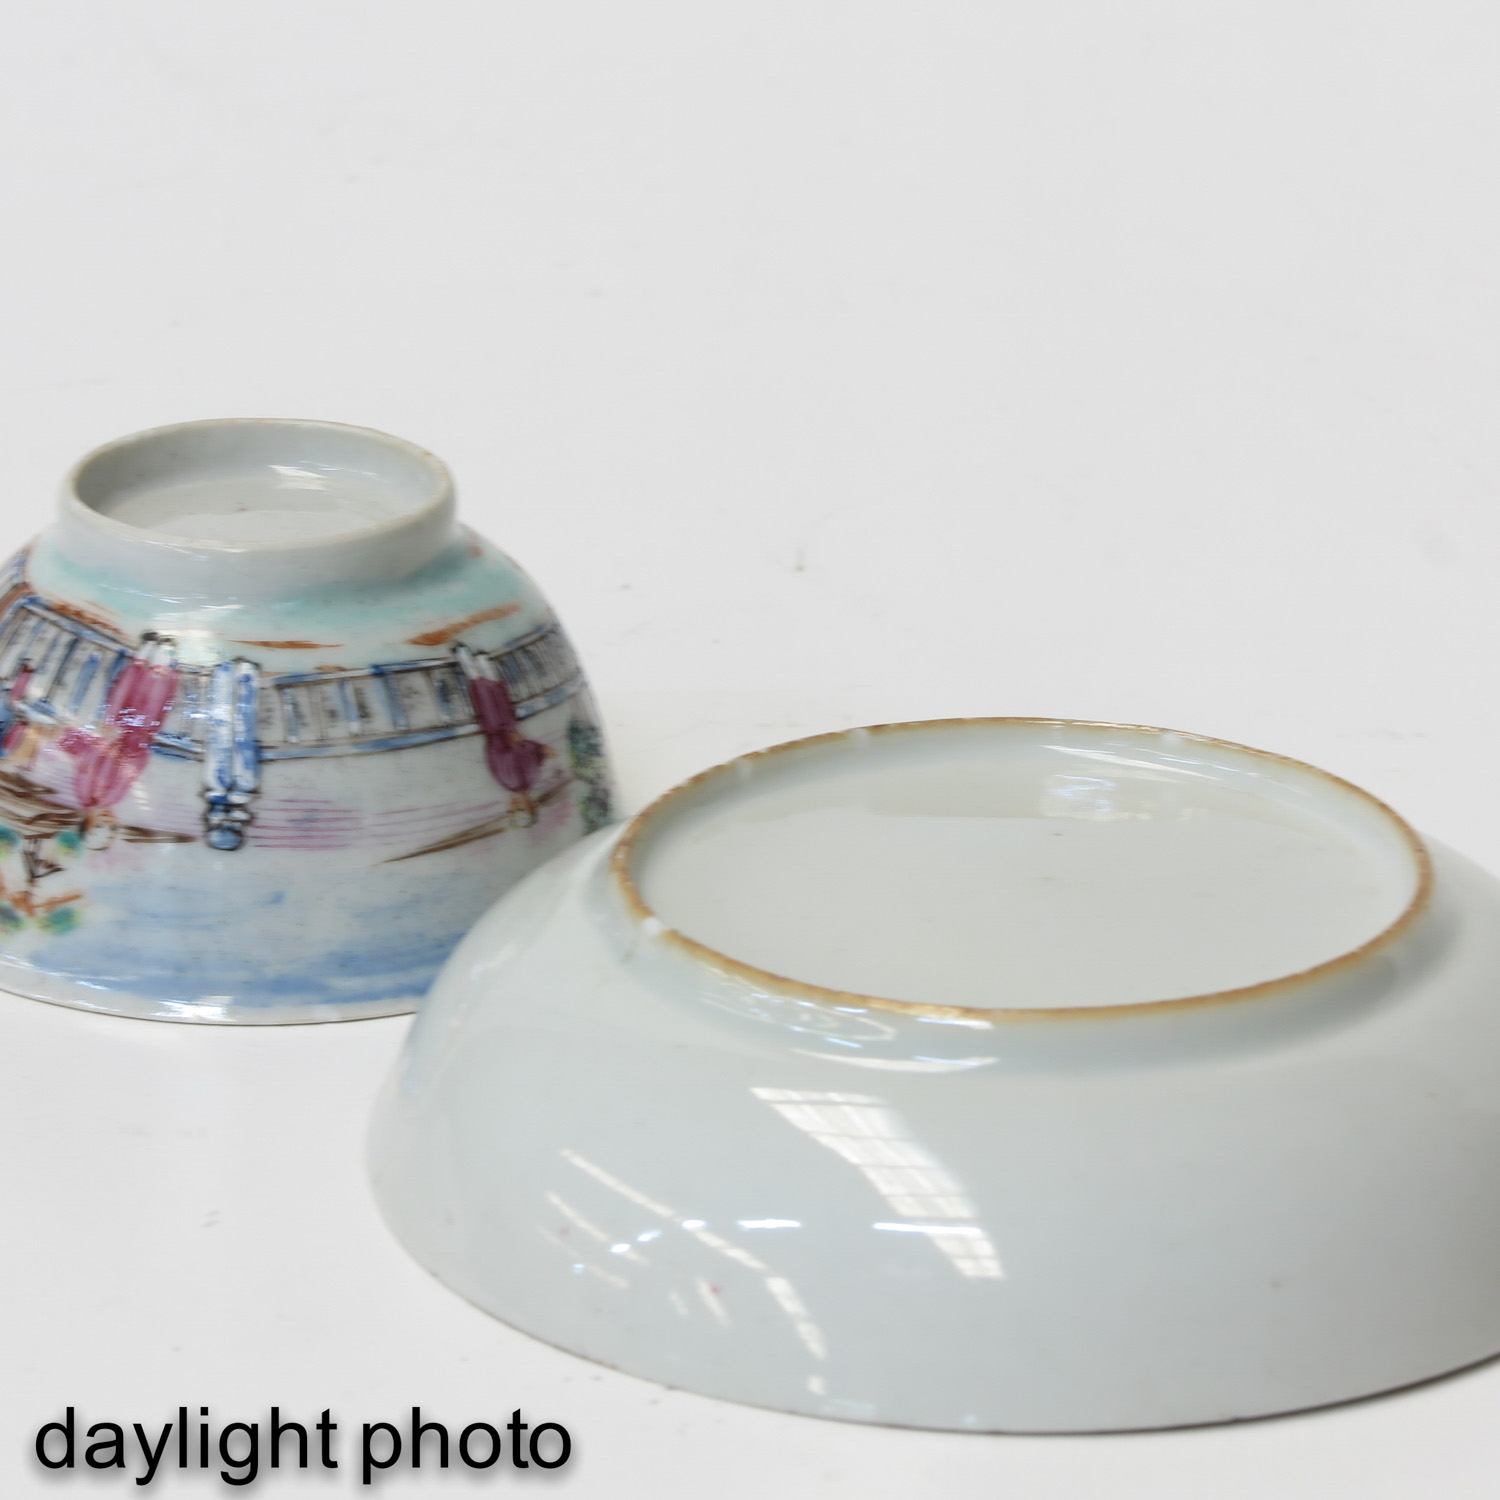 A Series of 3 Cups and Saucers - Image 10 of 10